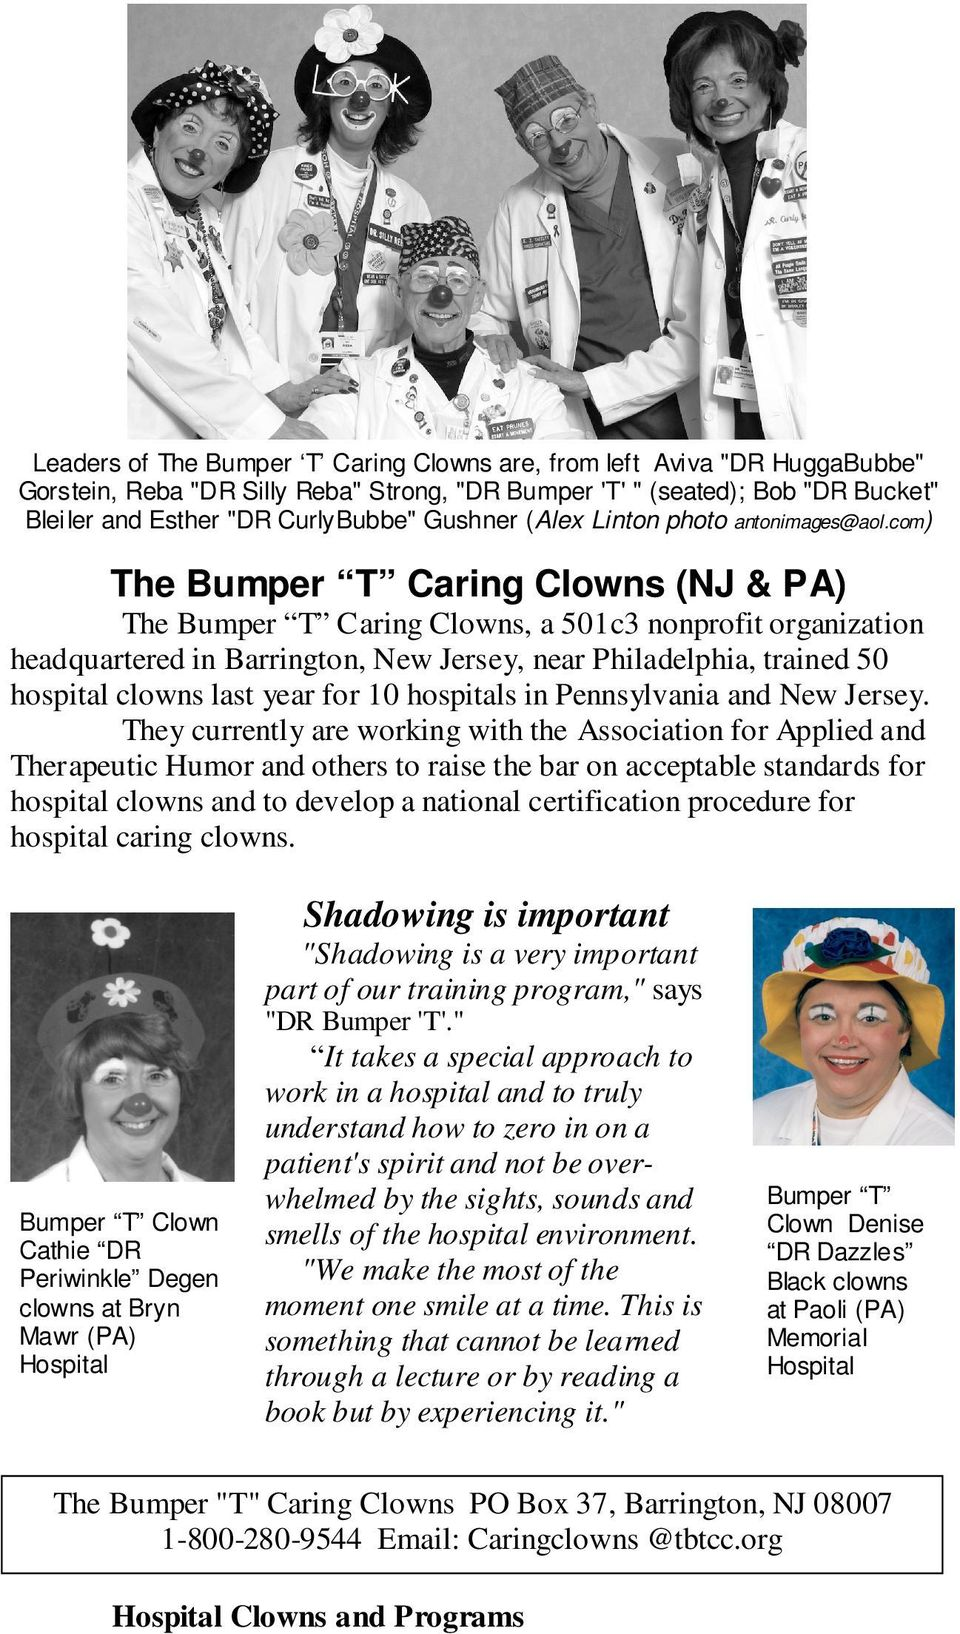 com) The Bumper T Caring Clowns (NJ & PA) The Bumper T Caring Clowns, a 501c3 nonprofit organization headquartered in Barrington, New Jersey, near Philadelphia, trained 50 hospital clowns last year